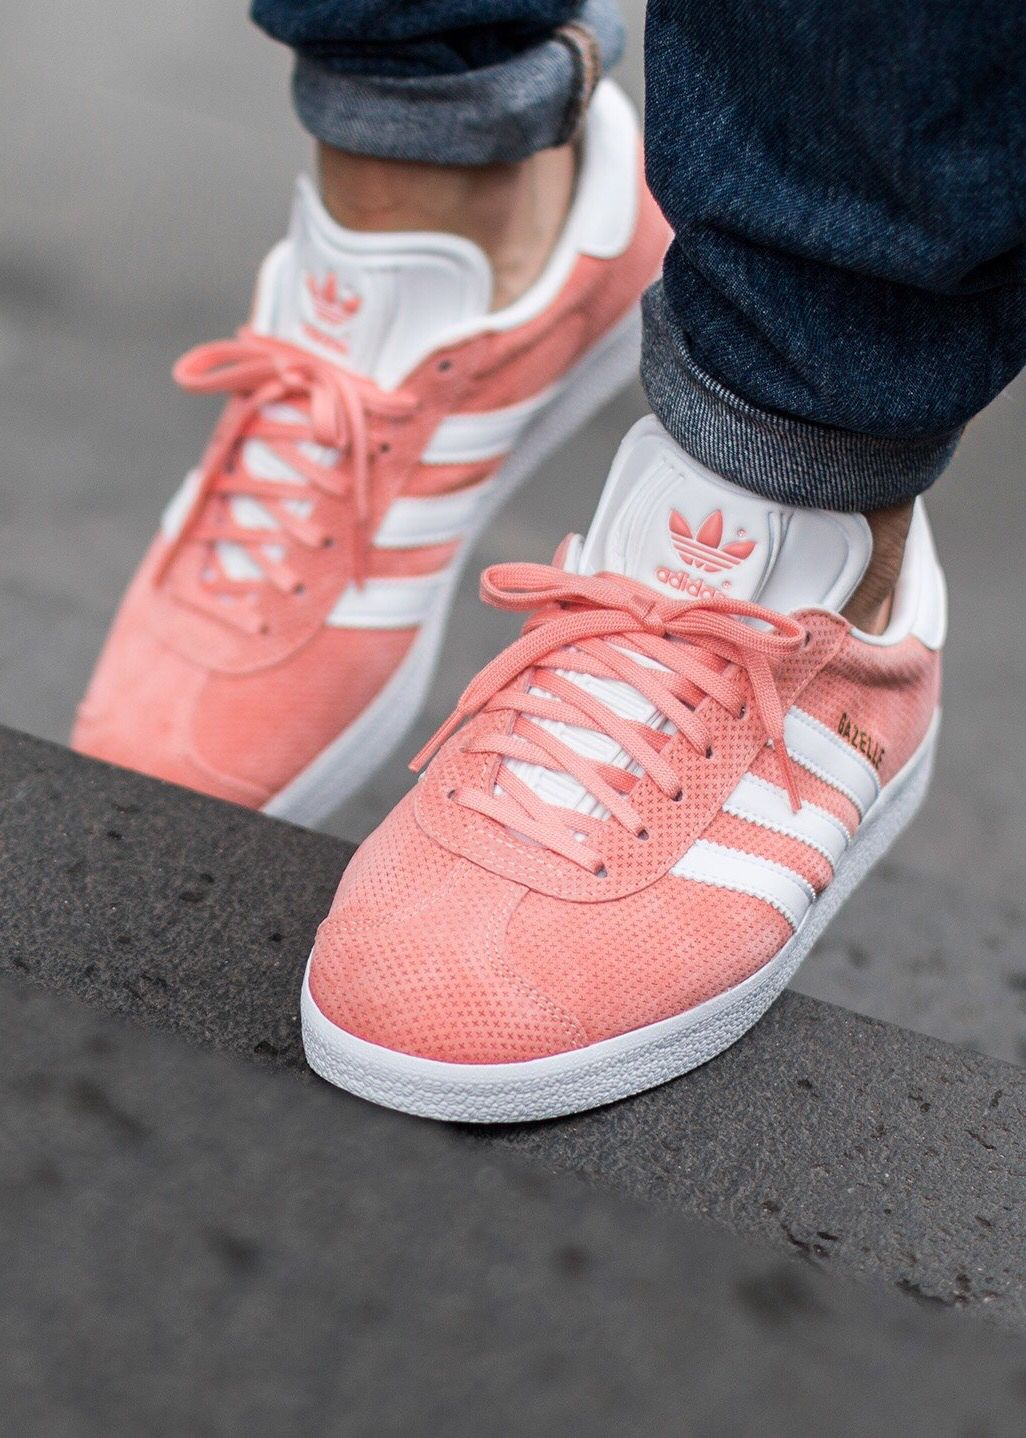 adidas nmd womens pink mens adidas gazelle ii red suede trainers